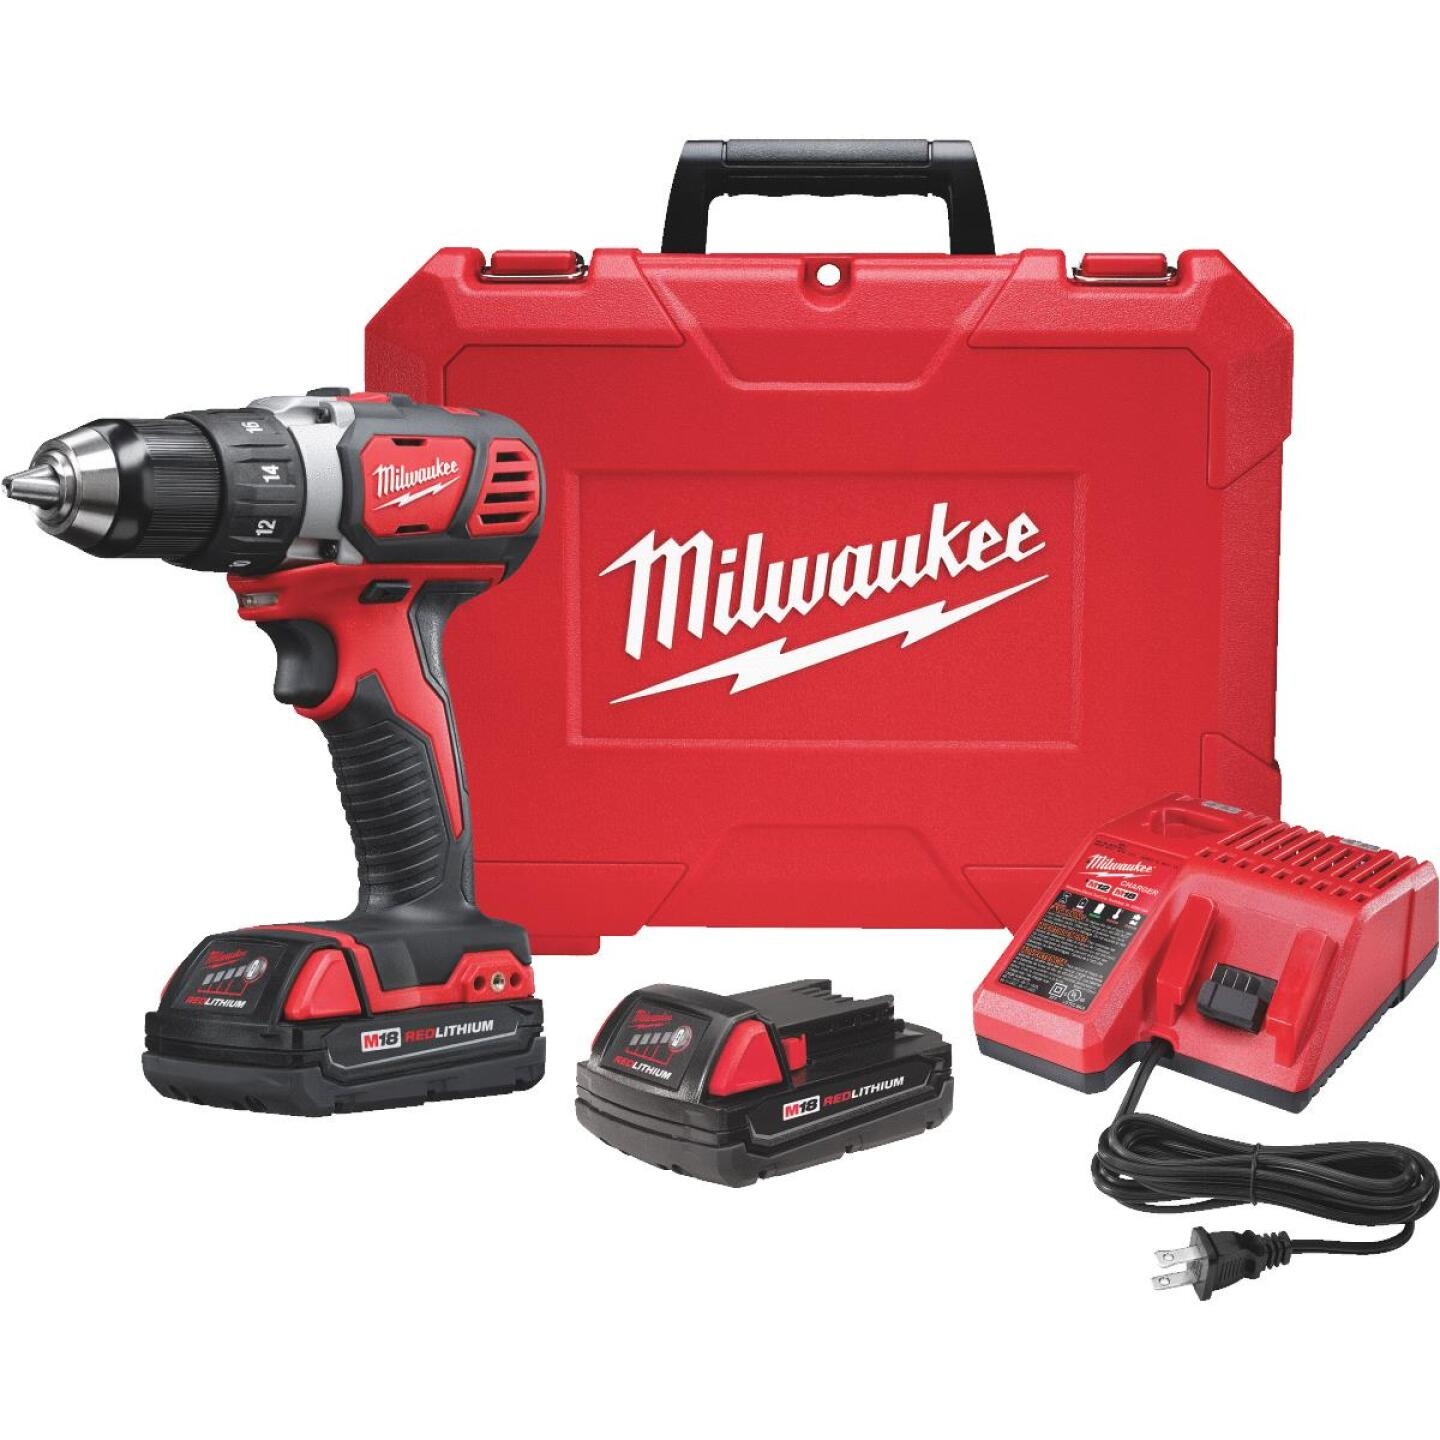 Milwaukee M18 18 Volt Lithium-Ion 1/2 In. Compact Cordless Drill Kit Image 11